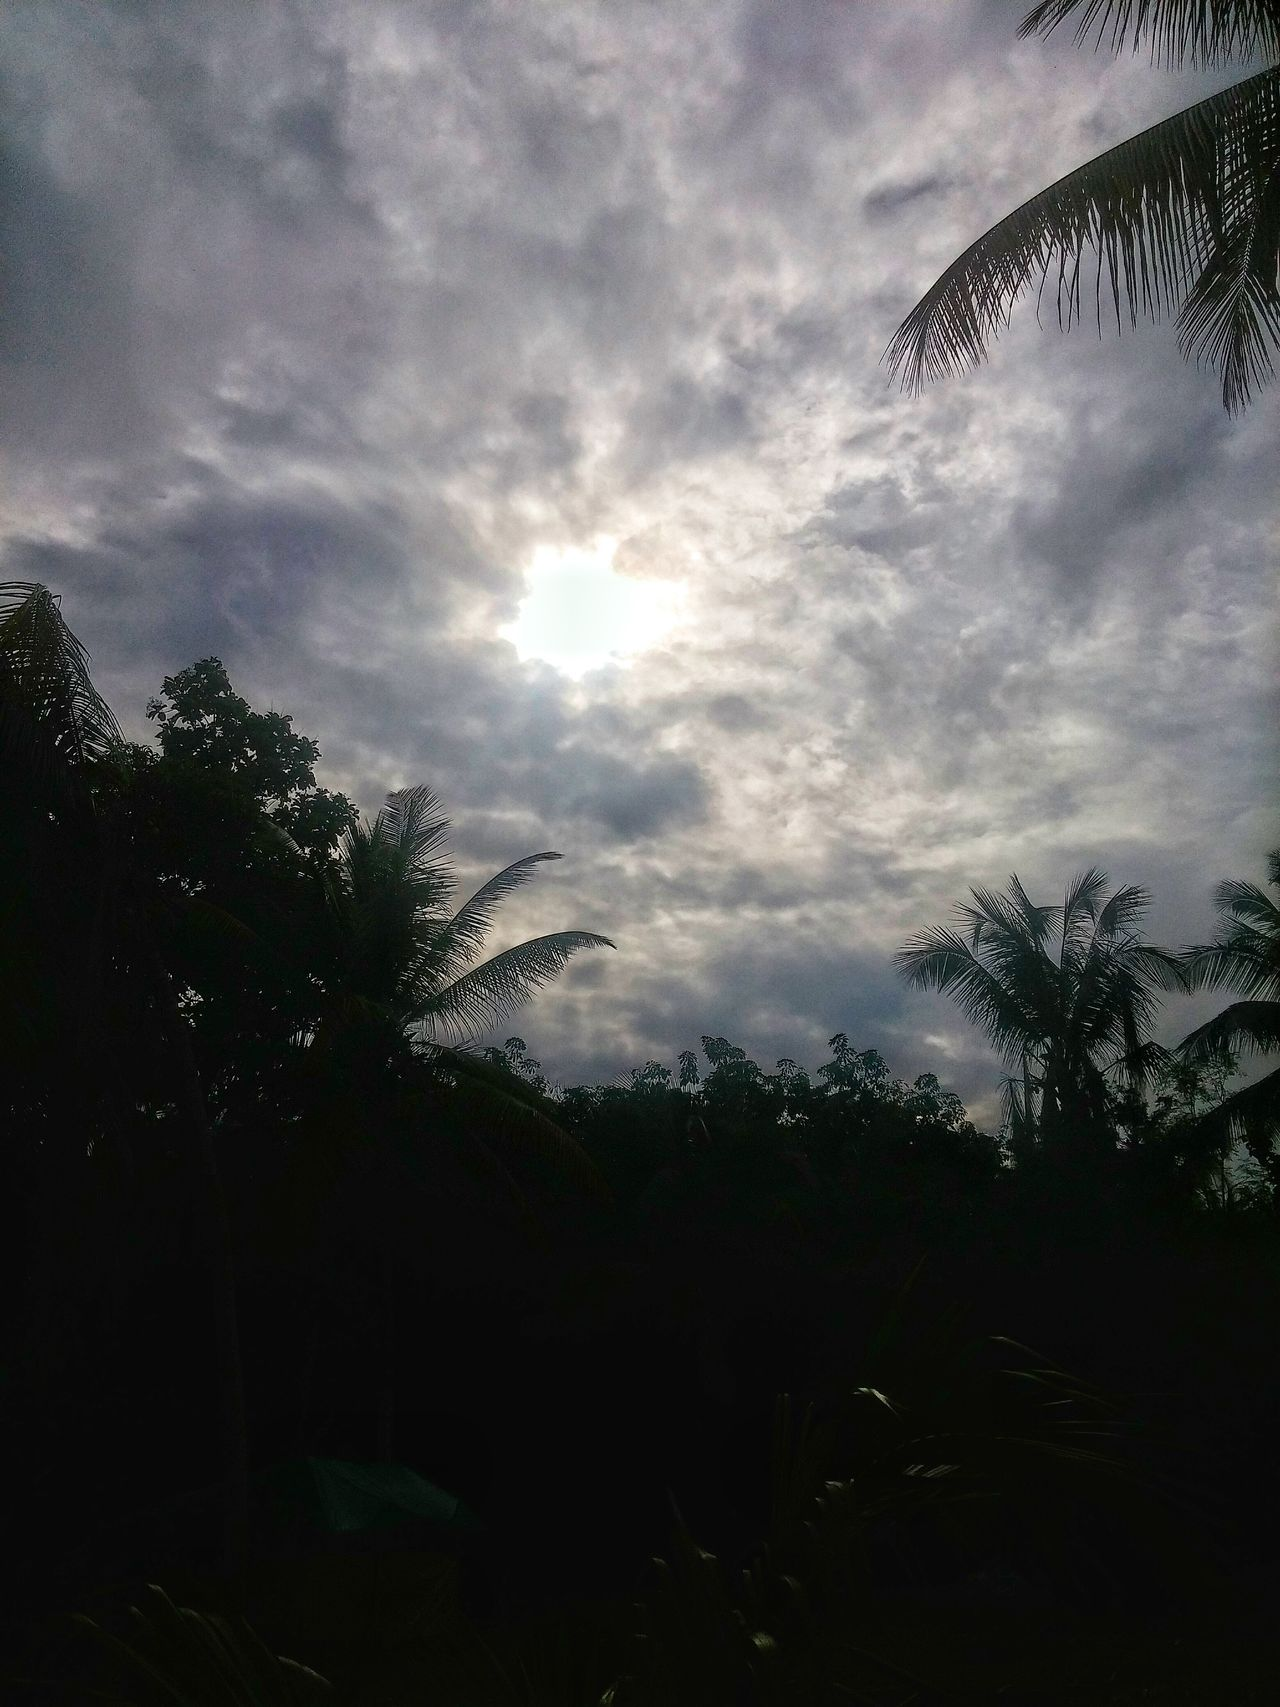 Kerala The Gods Own Country ;) Kerala India Malappuram Melattur Sky Skylovers Lgg3shot Breathtaking Mesmerizing Beautiful Nature Earth Buildings & Sky India Beautiful LGg3photography Beauty Beauty In Nature Clouds Green Sun After The Rain